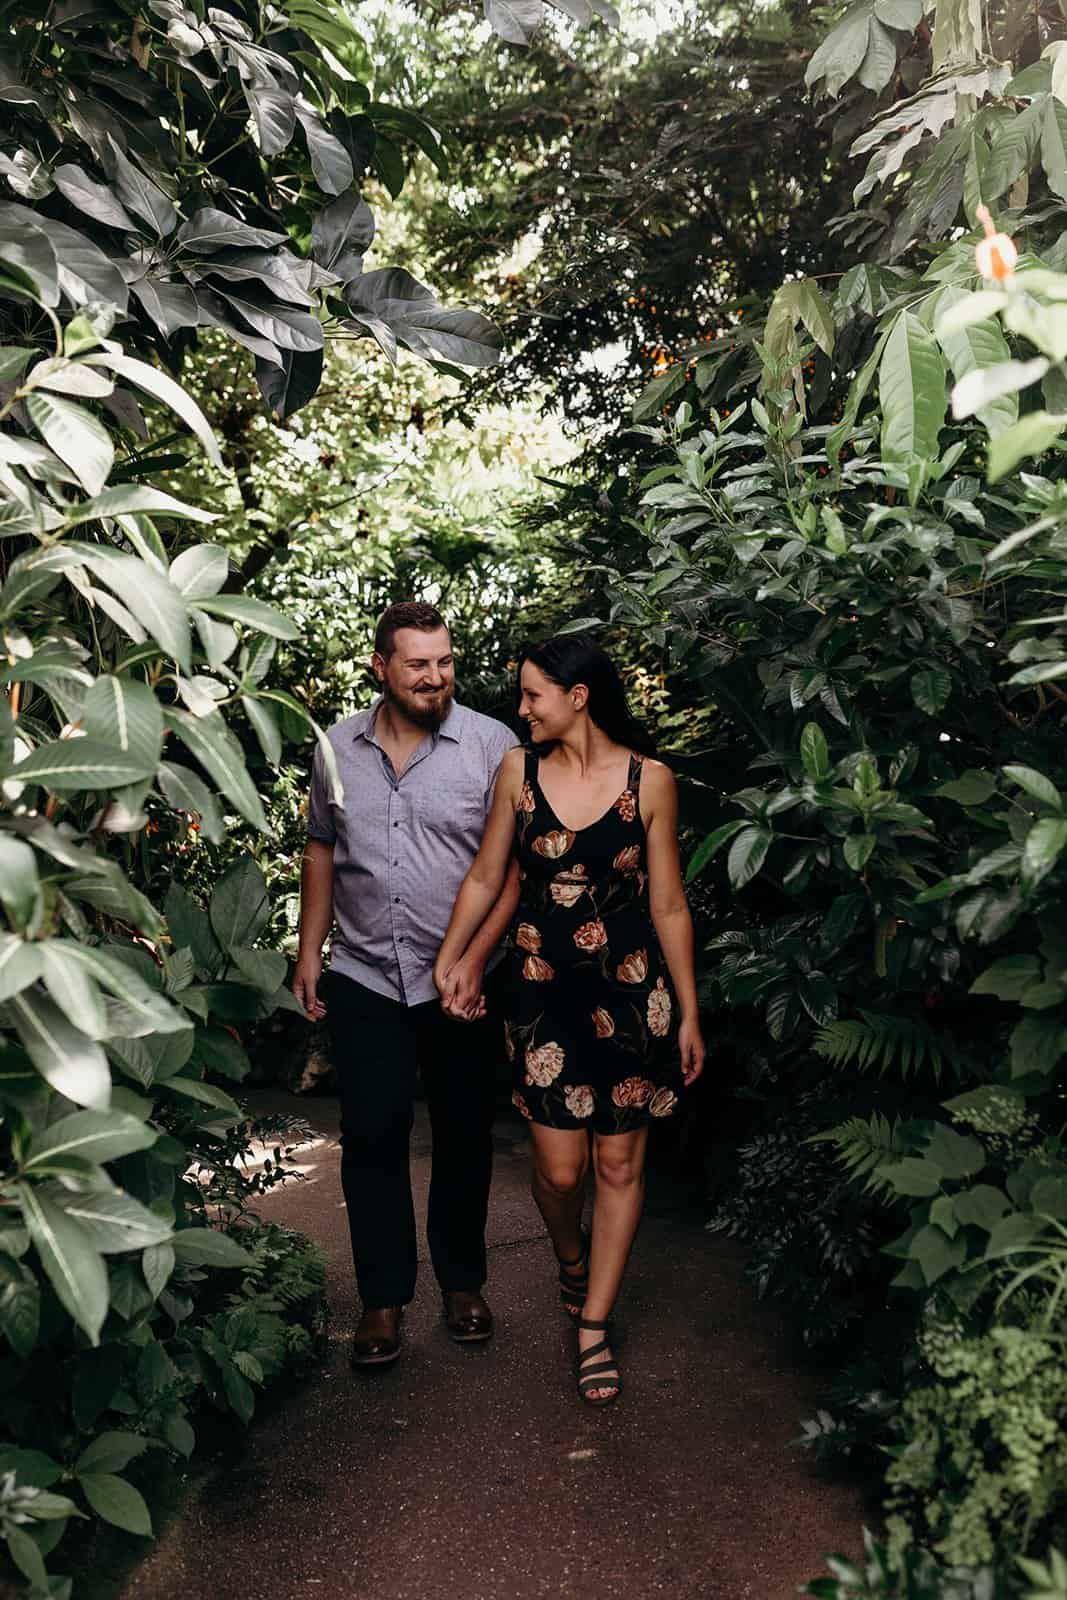 Couple smiling and holding hands while walking through greenery of Phipps Conservatory